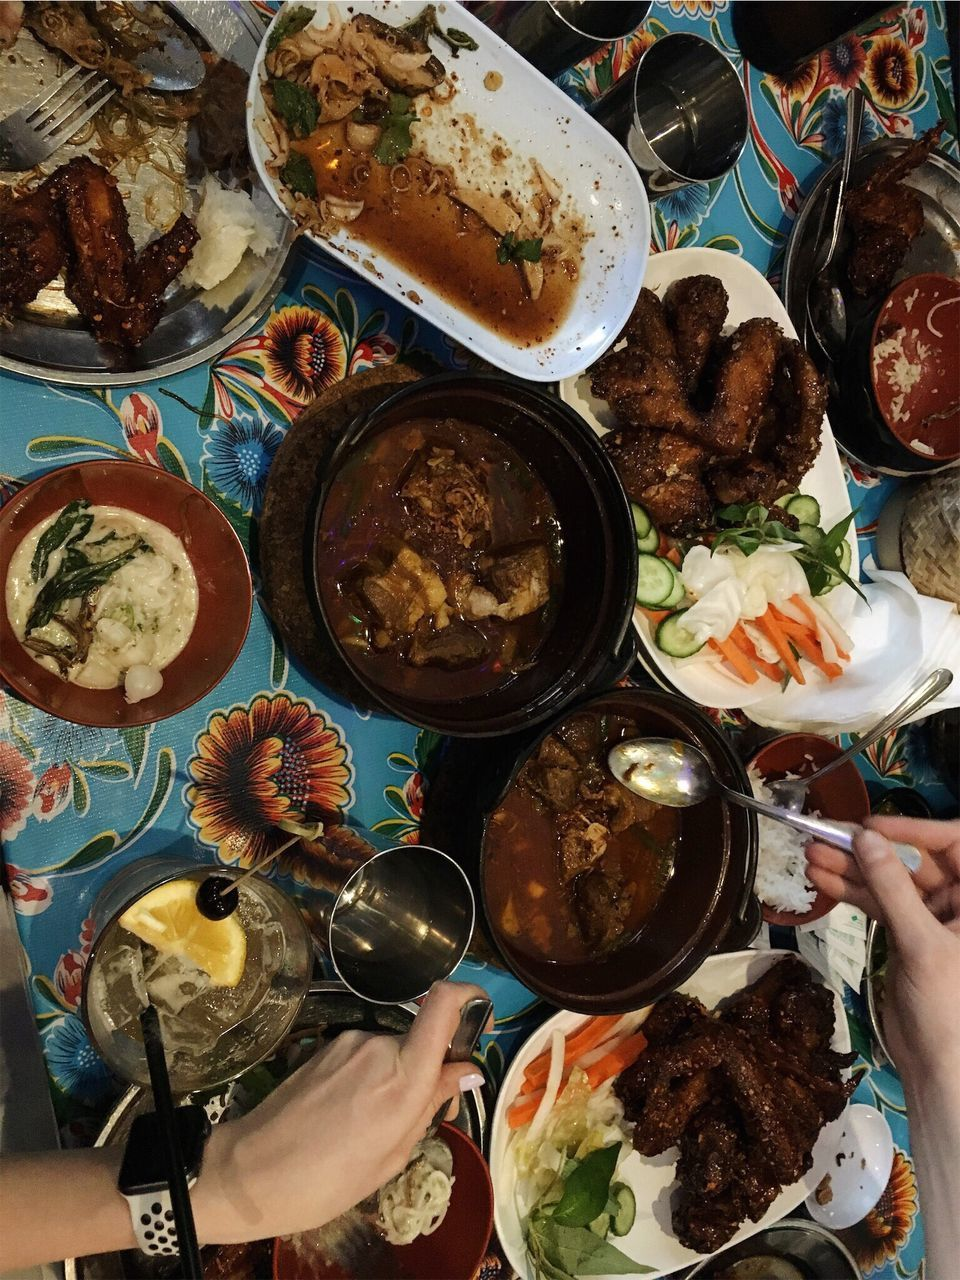 human hand, food and drink, food, human body part, real people, table, plate, holding, serving size, ready-to-eat, one person, freshness, high angle view, meat, directly above, meal, healthy eating, indoors, lifestyles, men, women, close-up, day, people